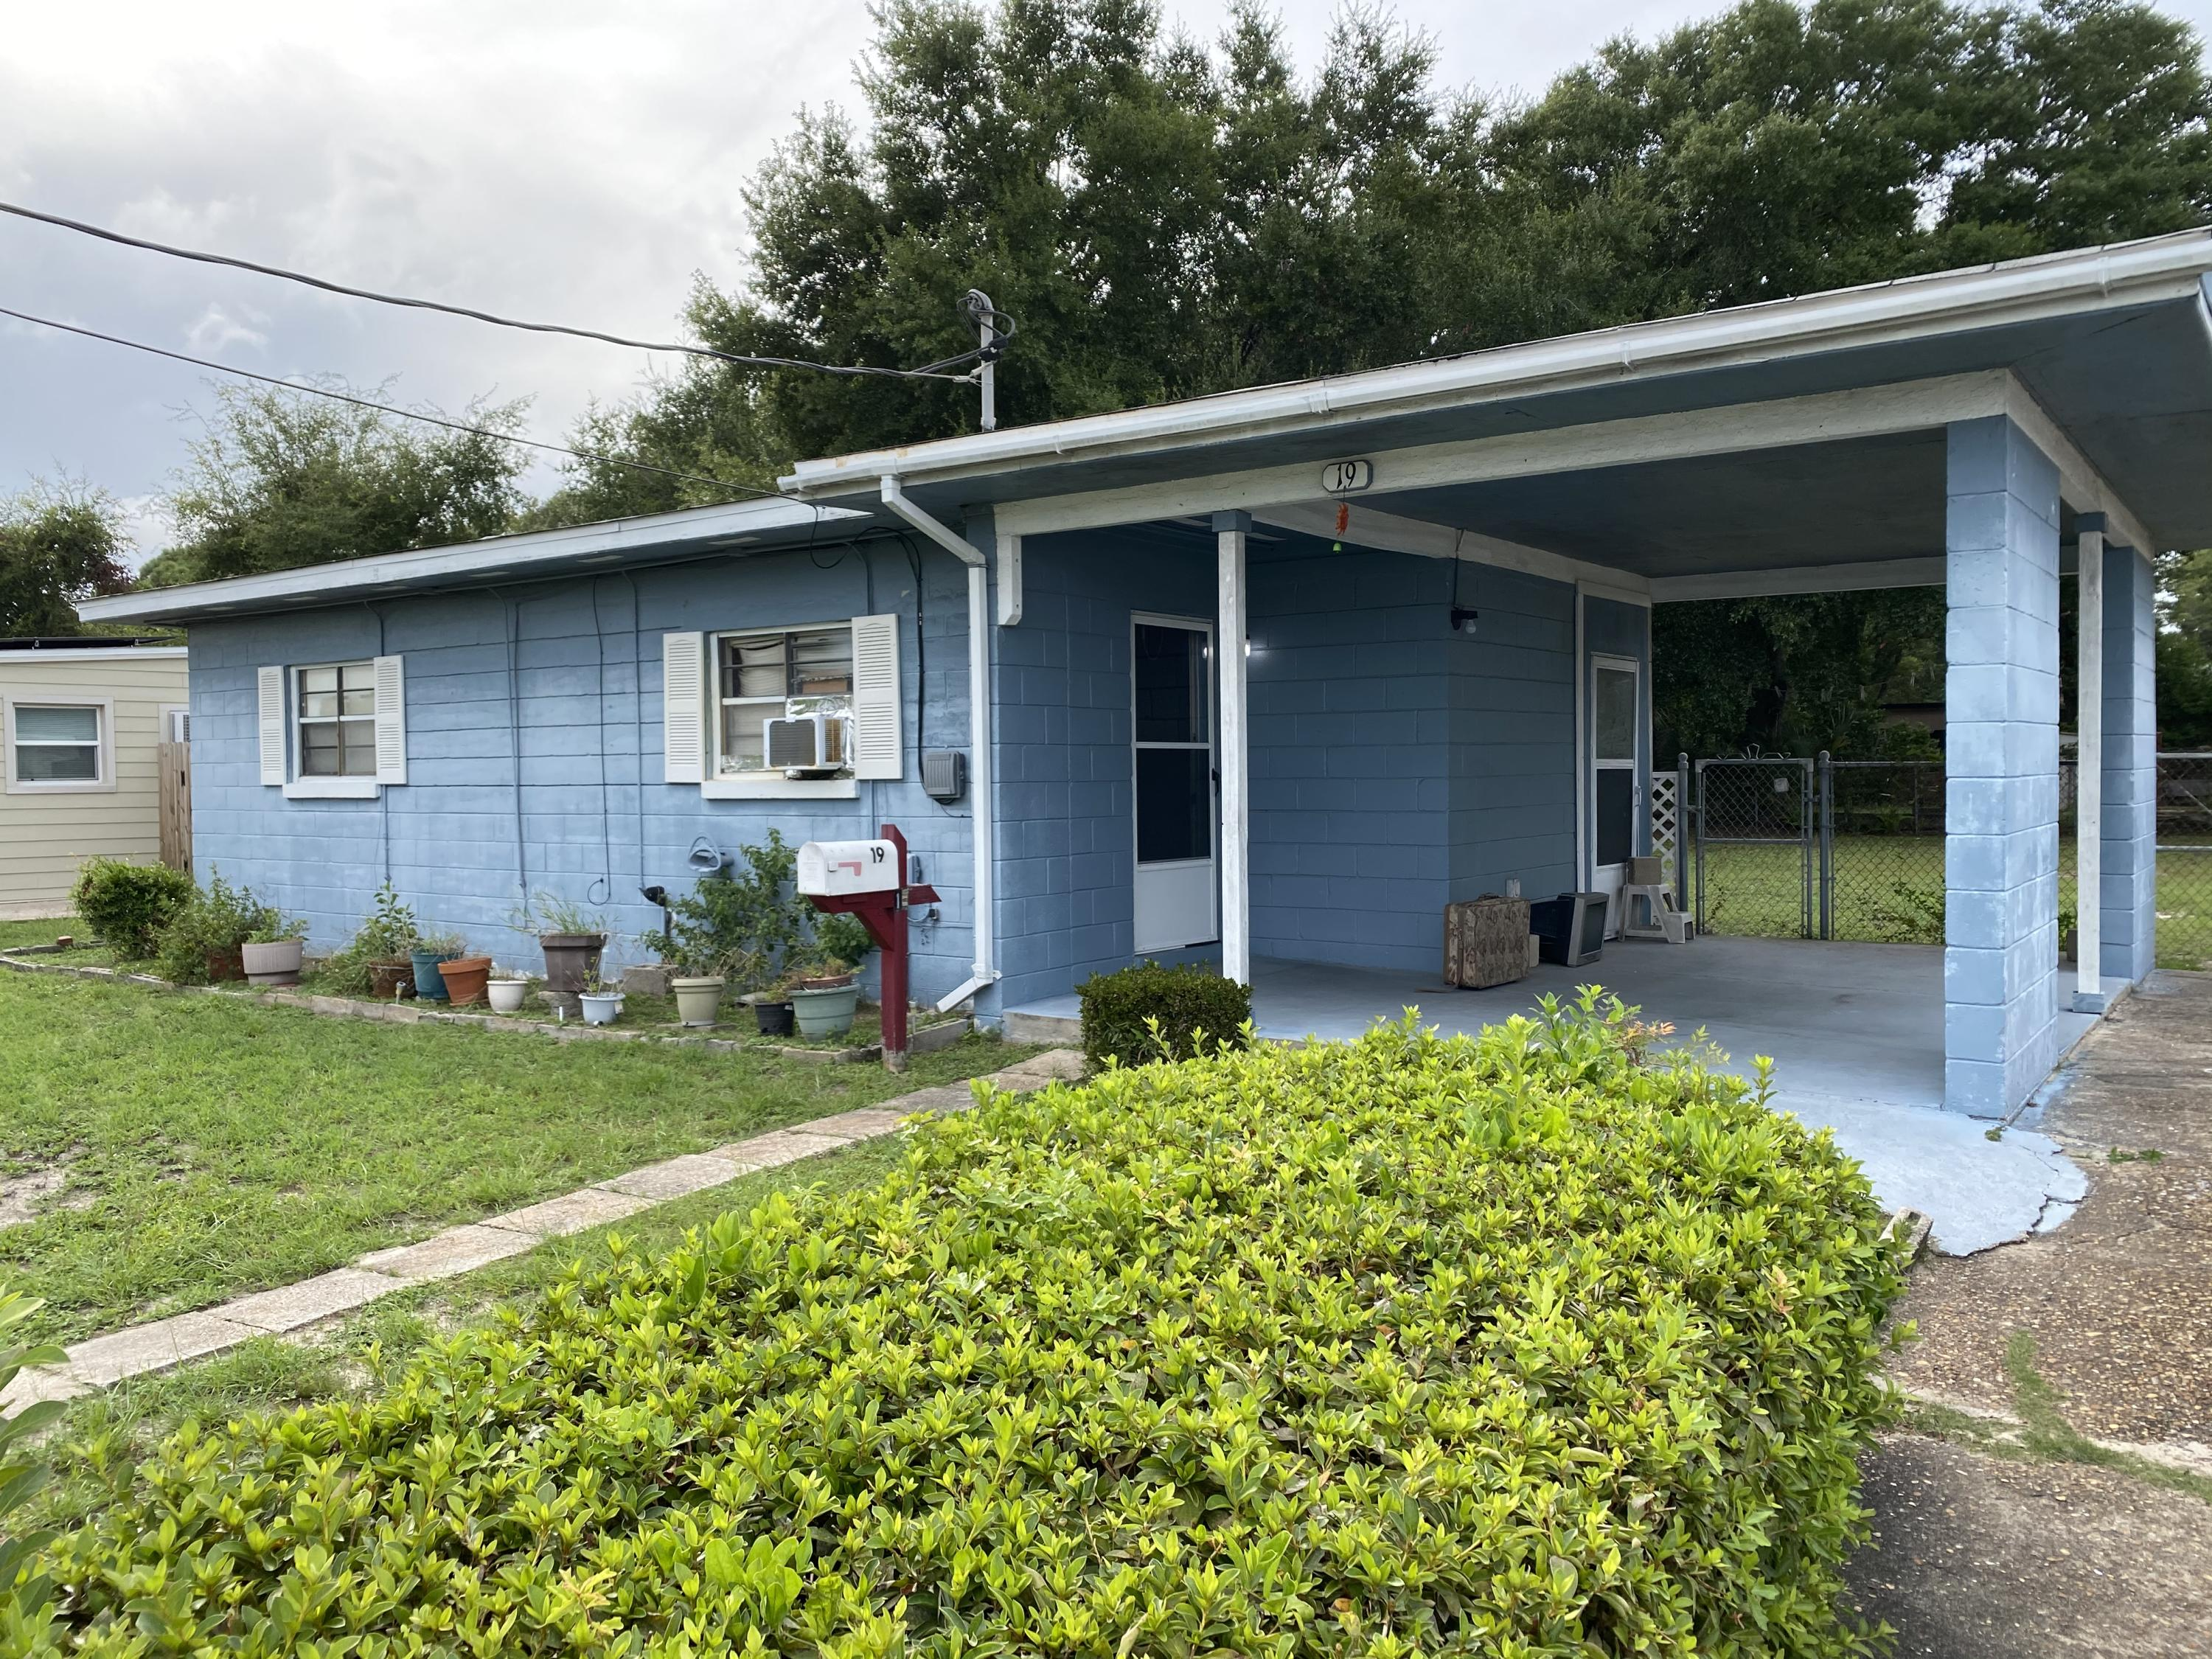 Photo of home for sale at 19 Jackson, Fort Walton Beach FL